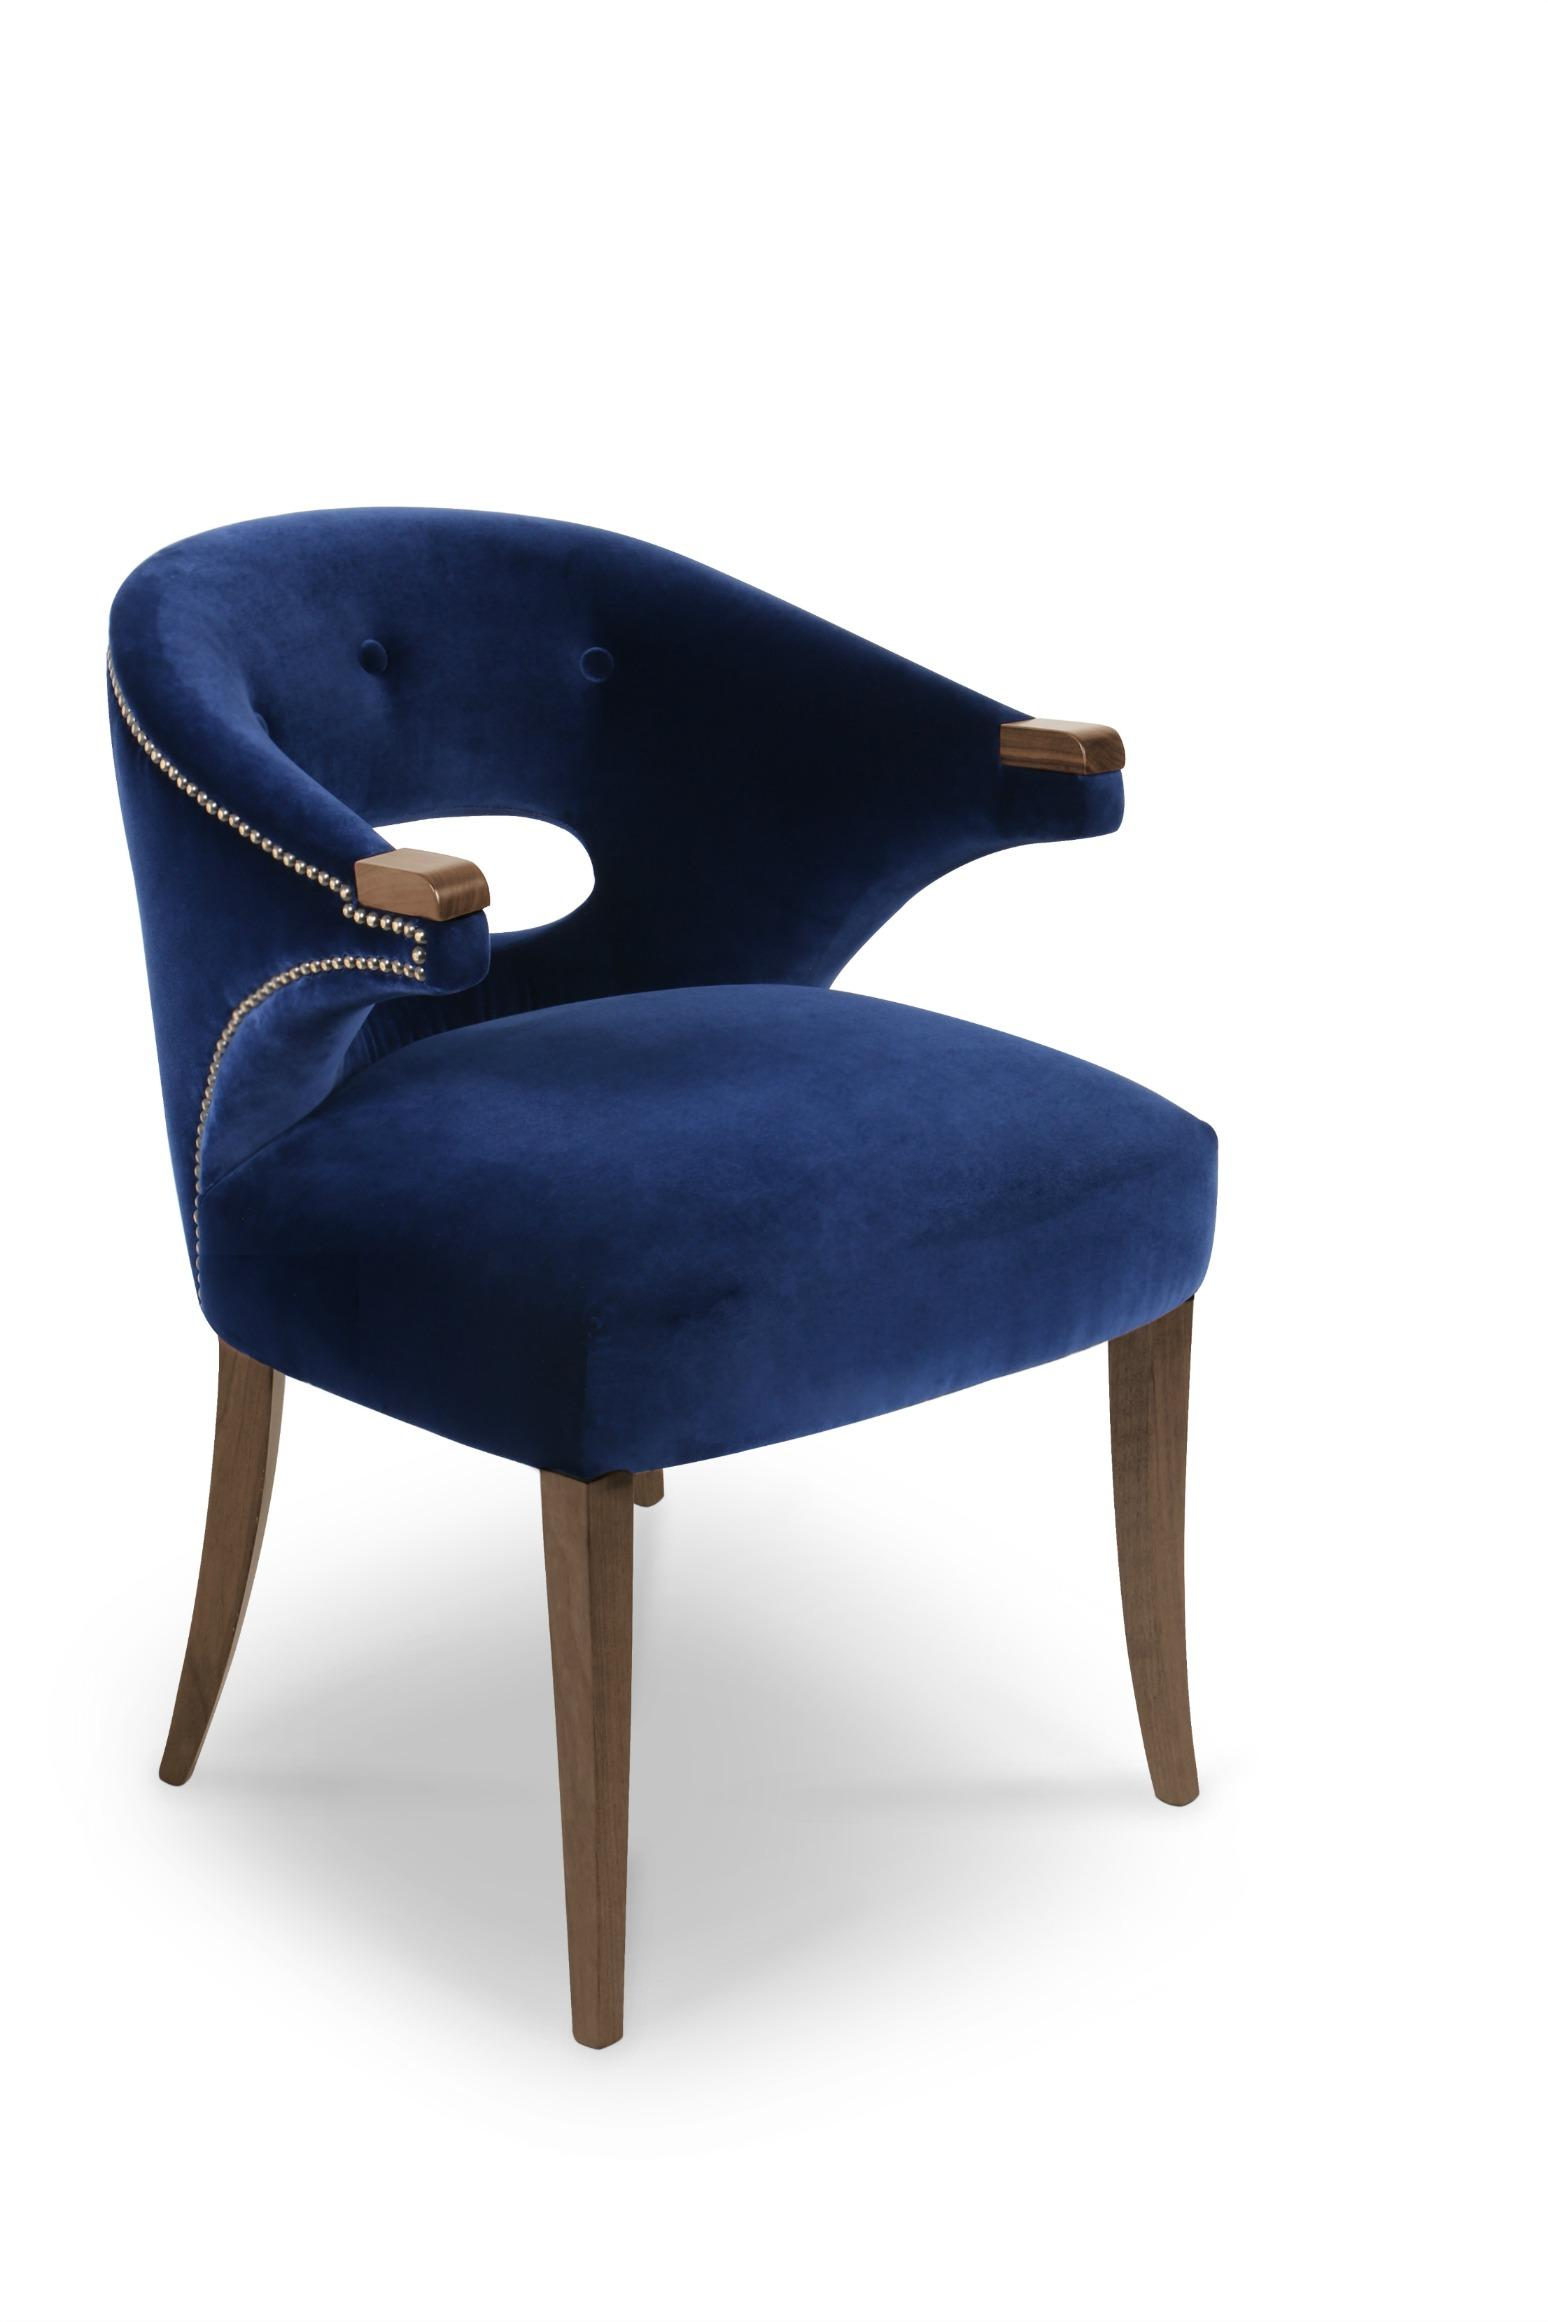 maison et objet 2020 Maison et Objet 2020 and imm Cologne: the Best of Modern Chairs Maison et Objet 2020 and imm Cologne The Best of Modern Chairs